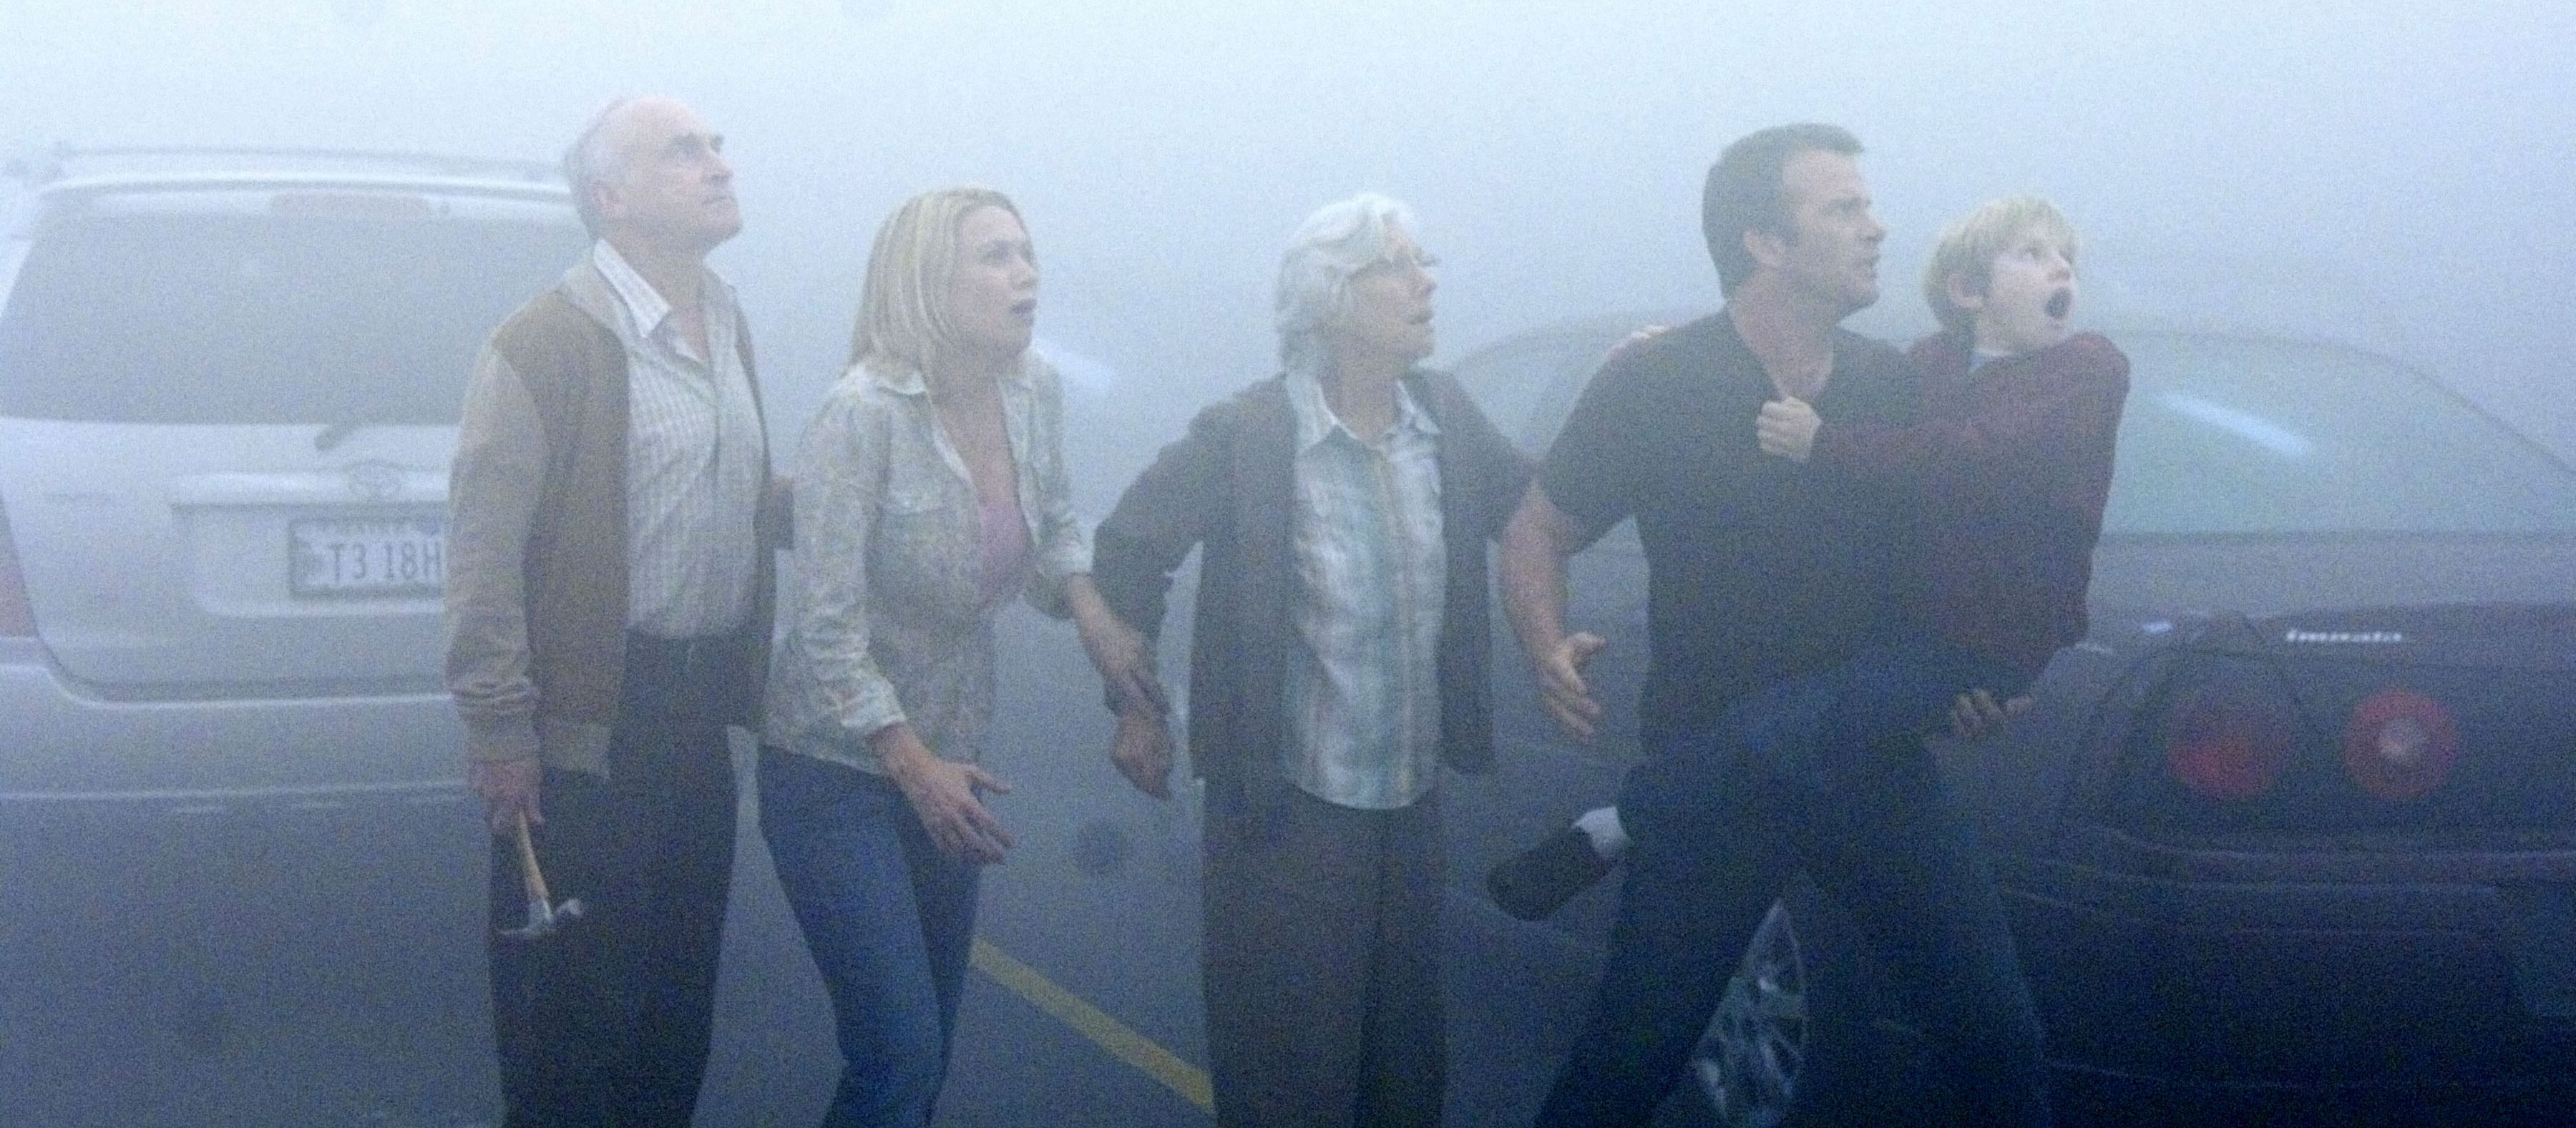 An image from The Mist